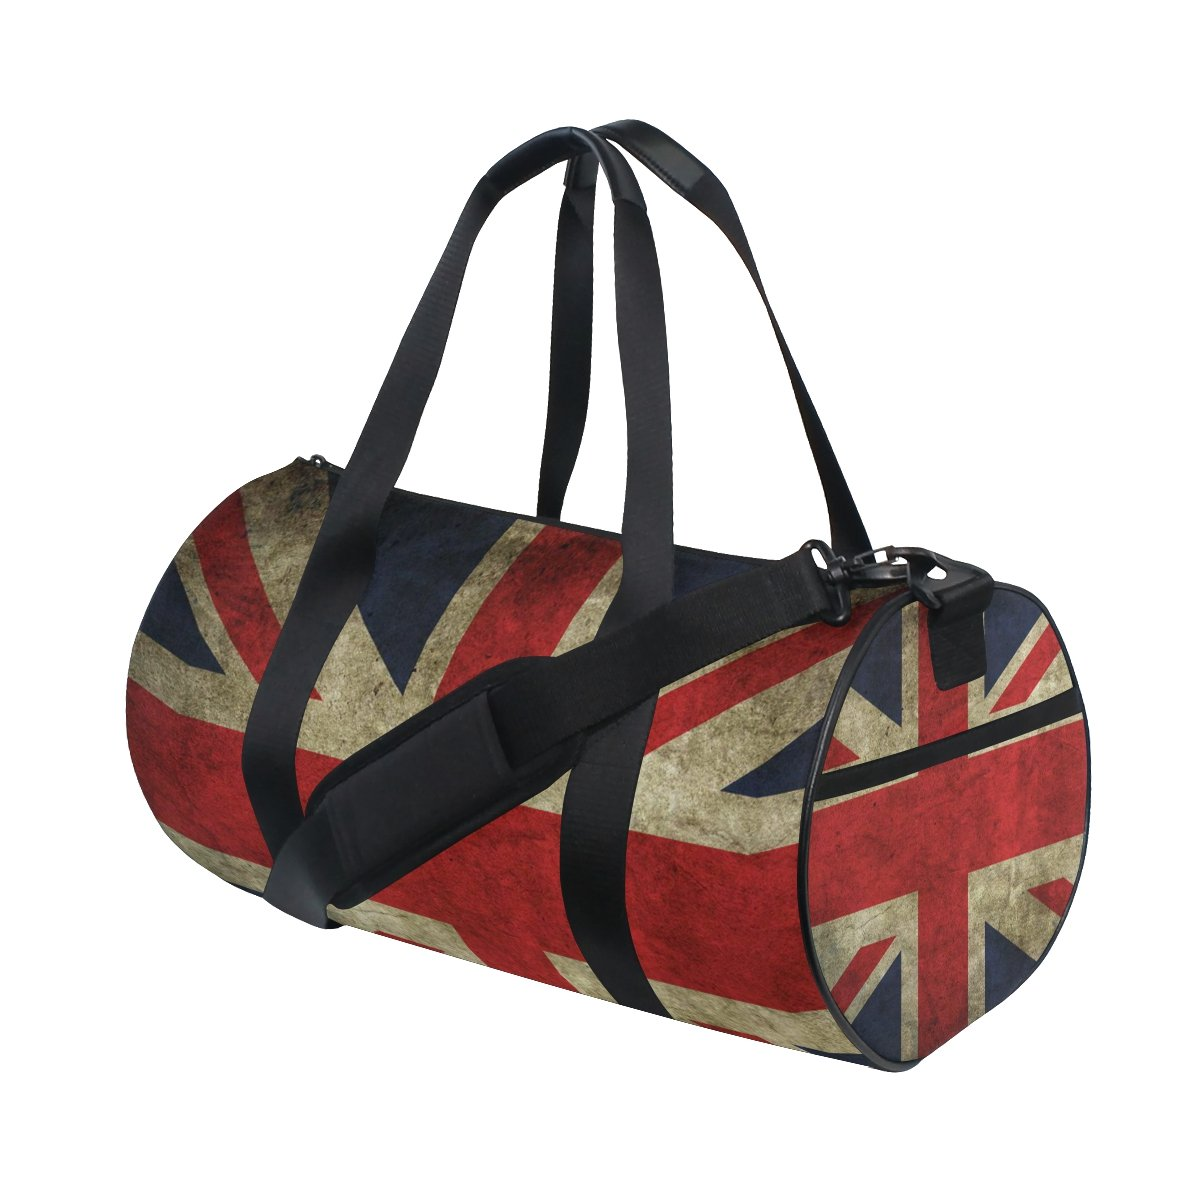 JIUMEI Britain Flag Lightweight Canvas Sports Bag Travel Duffel Yoga Gym Bags